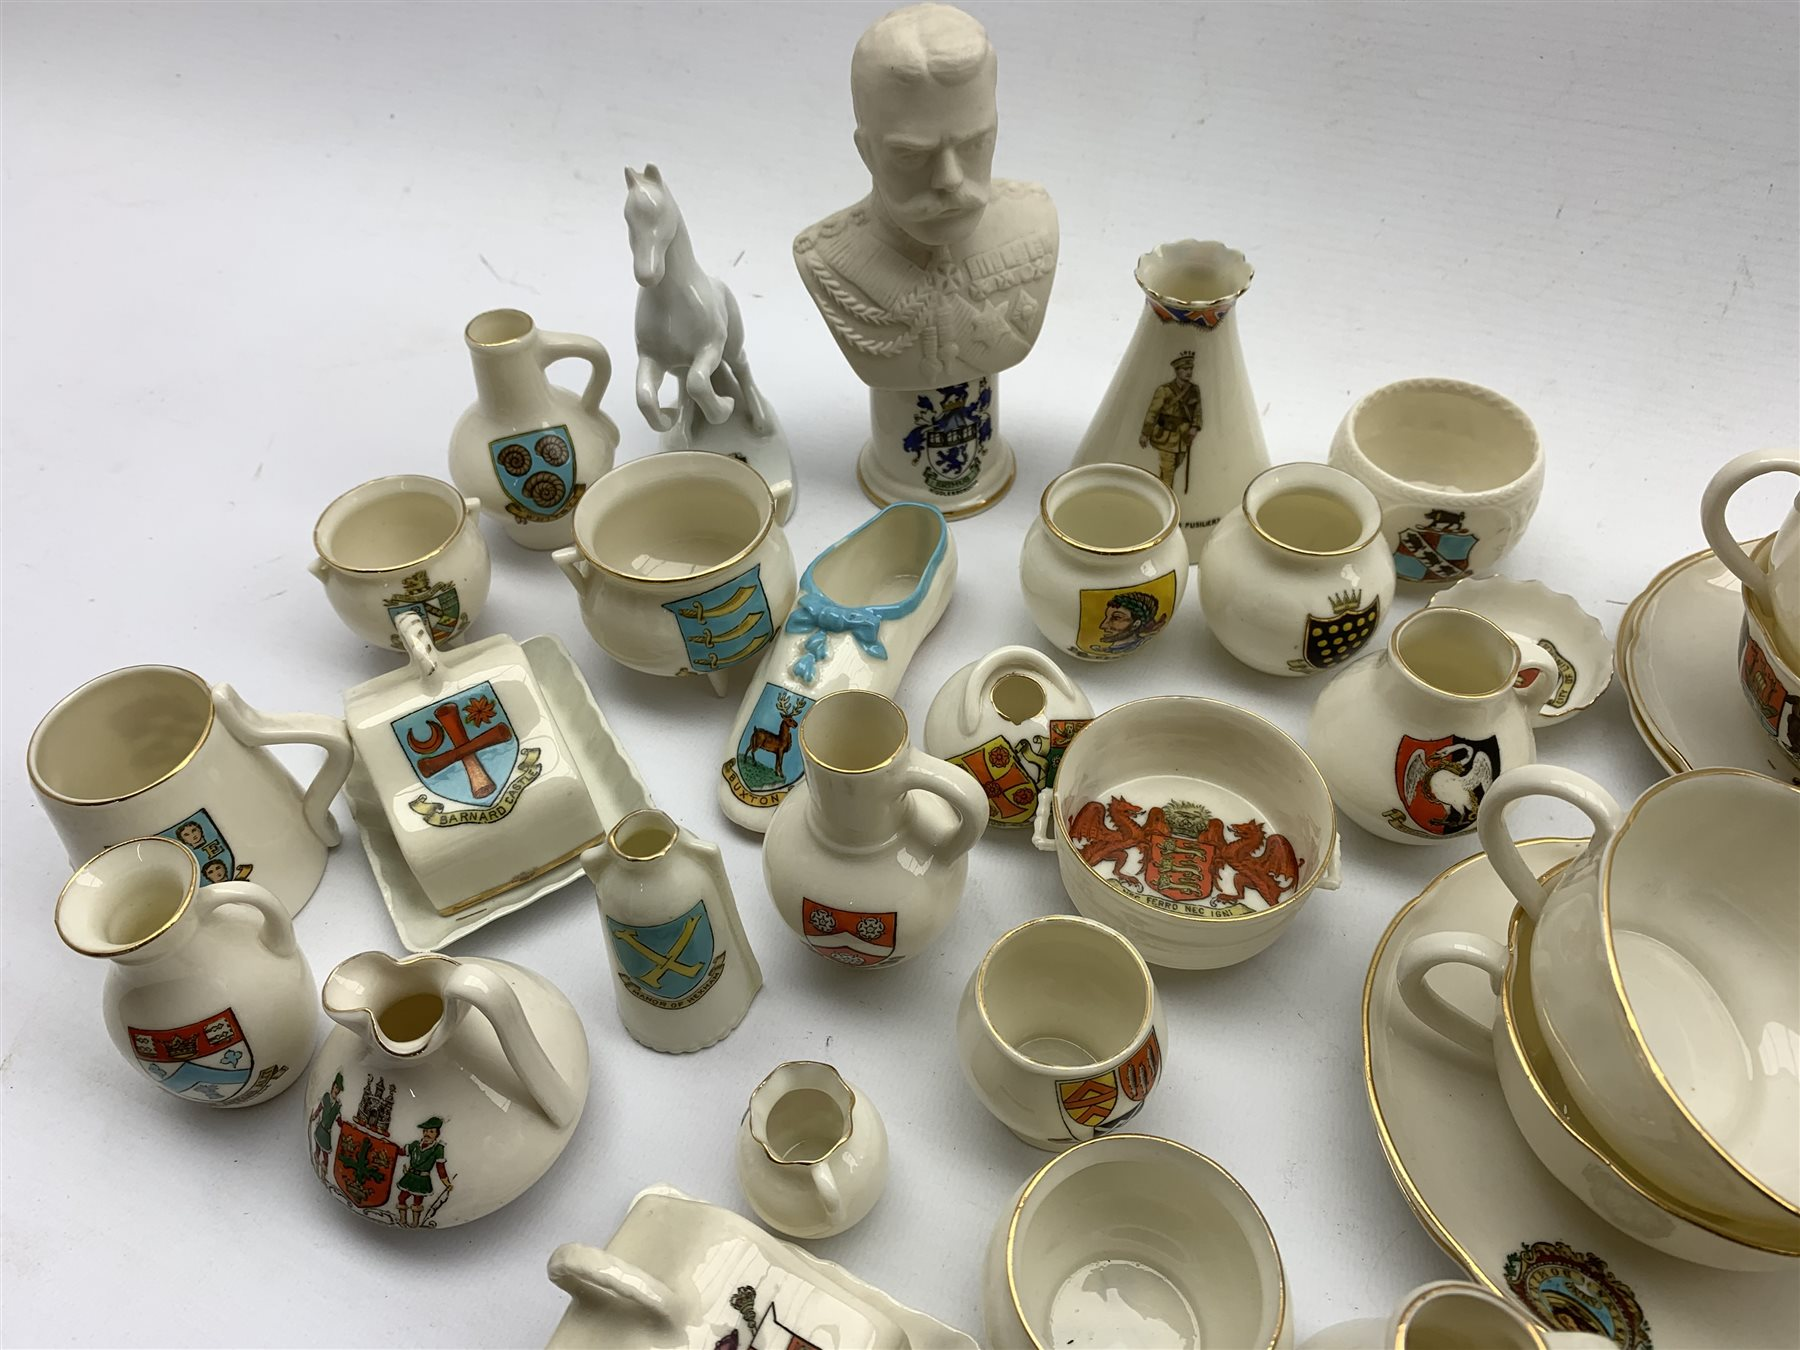 Collection of W.H. Goss and other crested ware including: Model of Queen Victoria's baby shoe, the e - Image 2 of 5